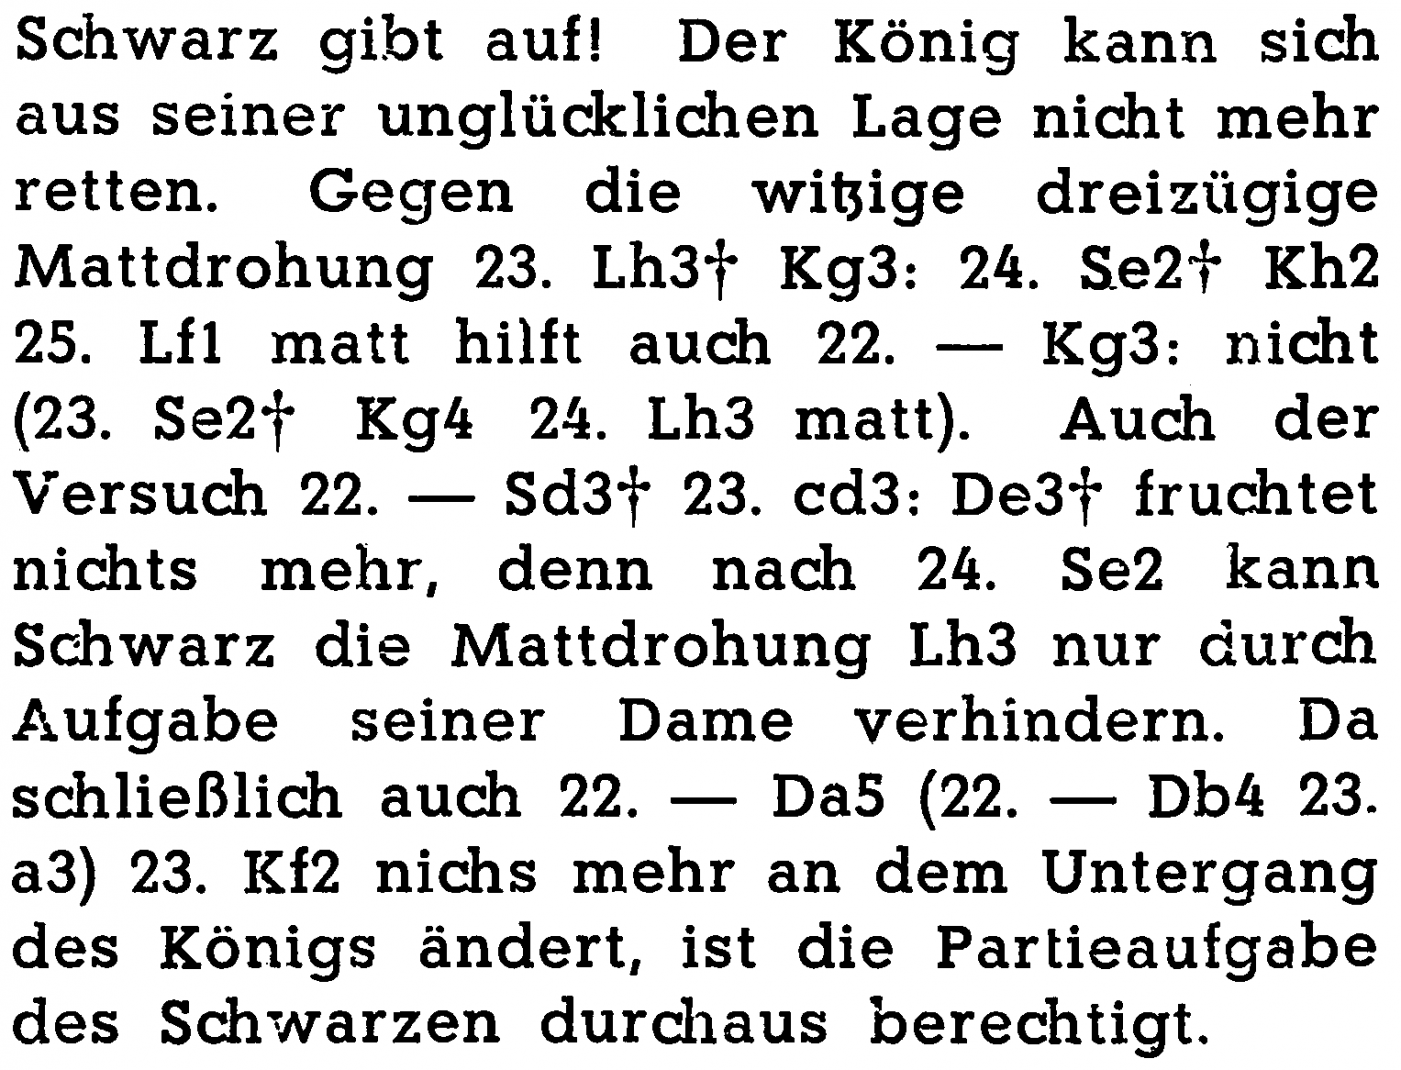 Schriftmuster_1938.png